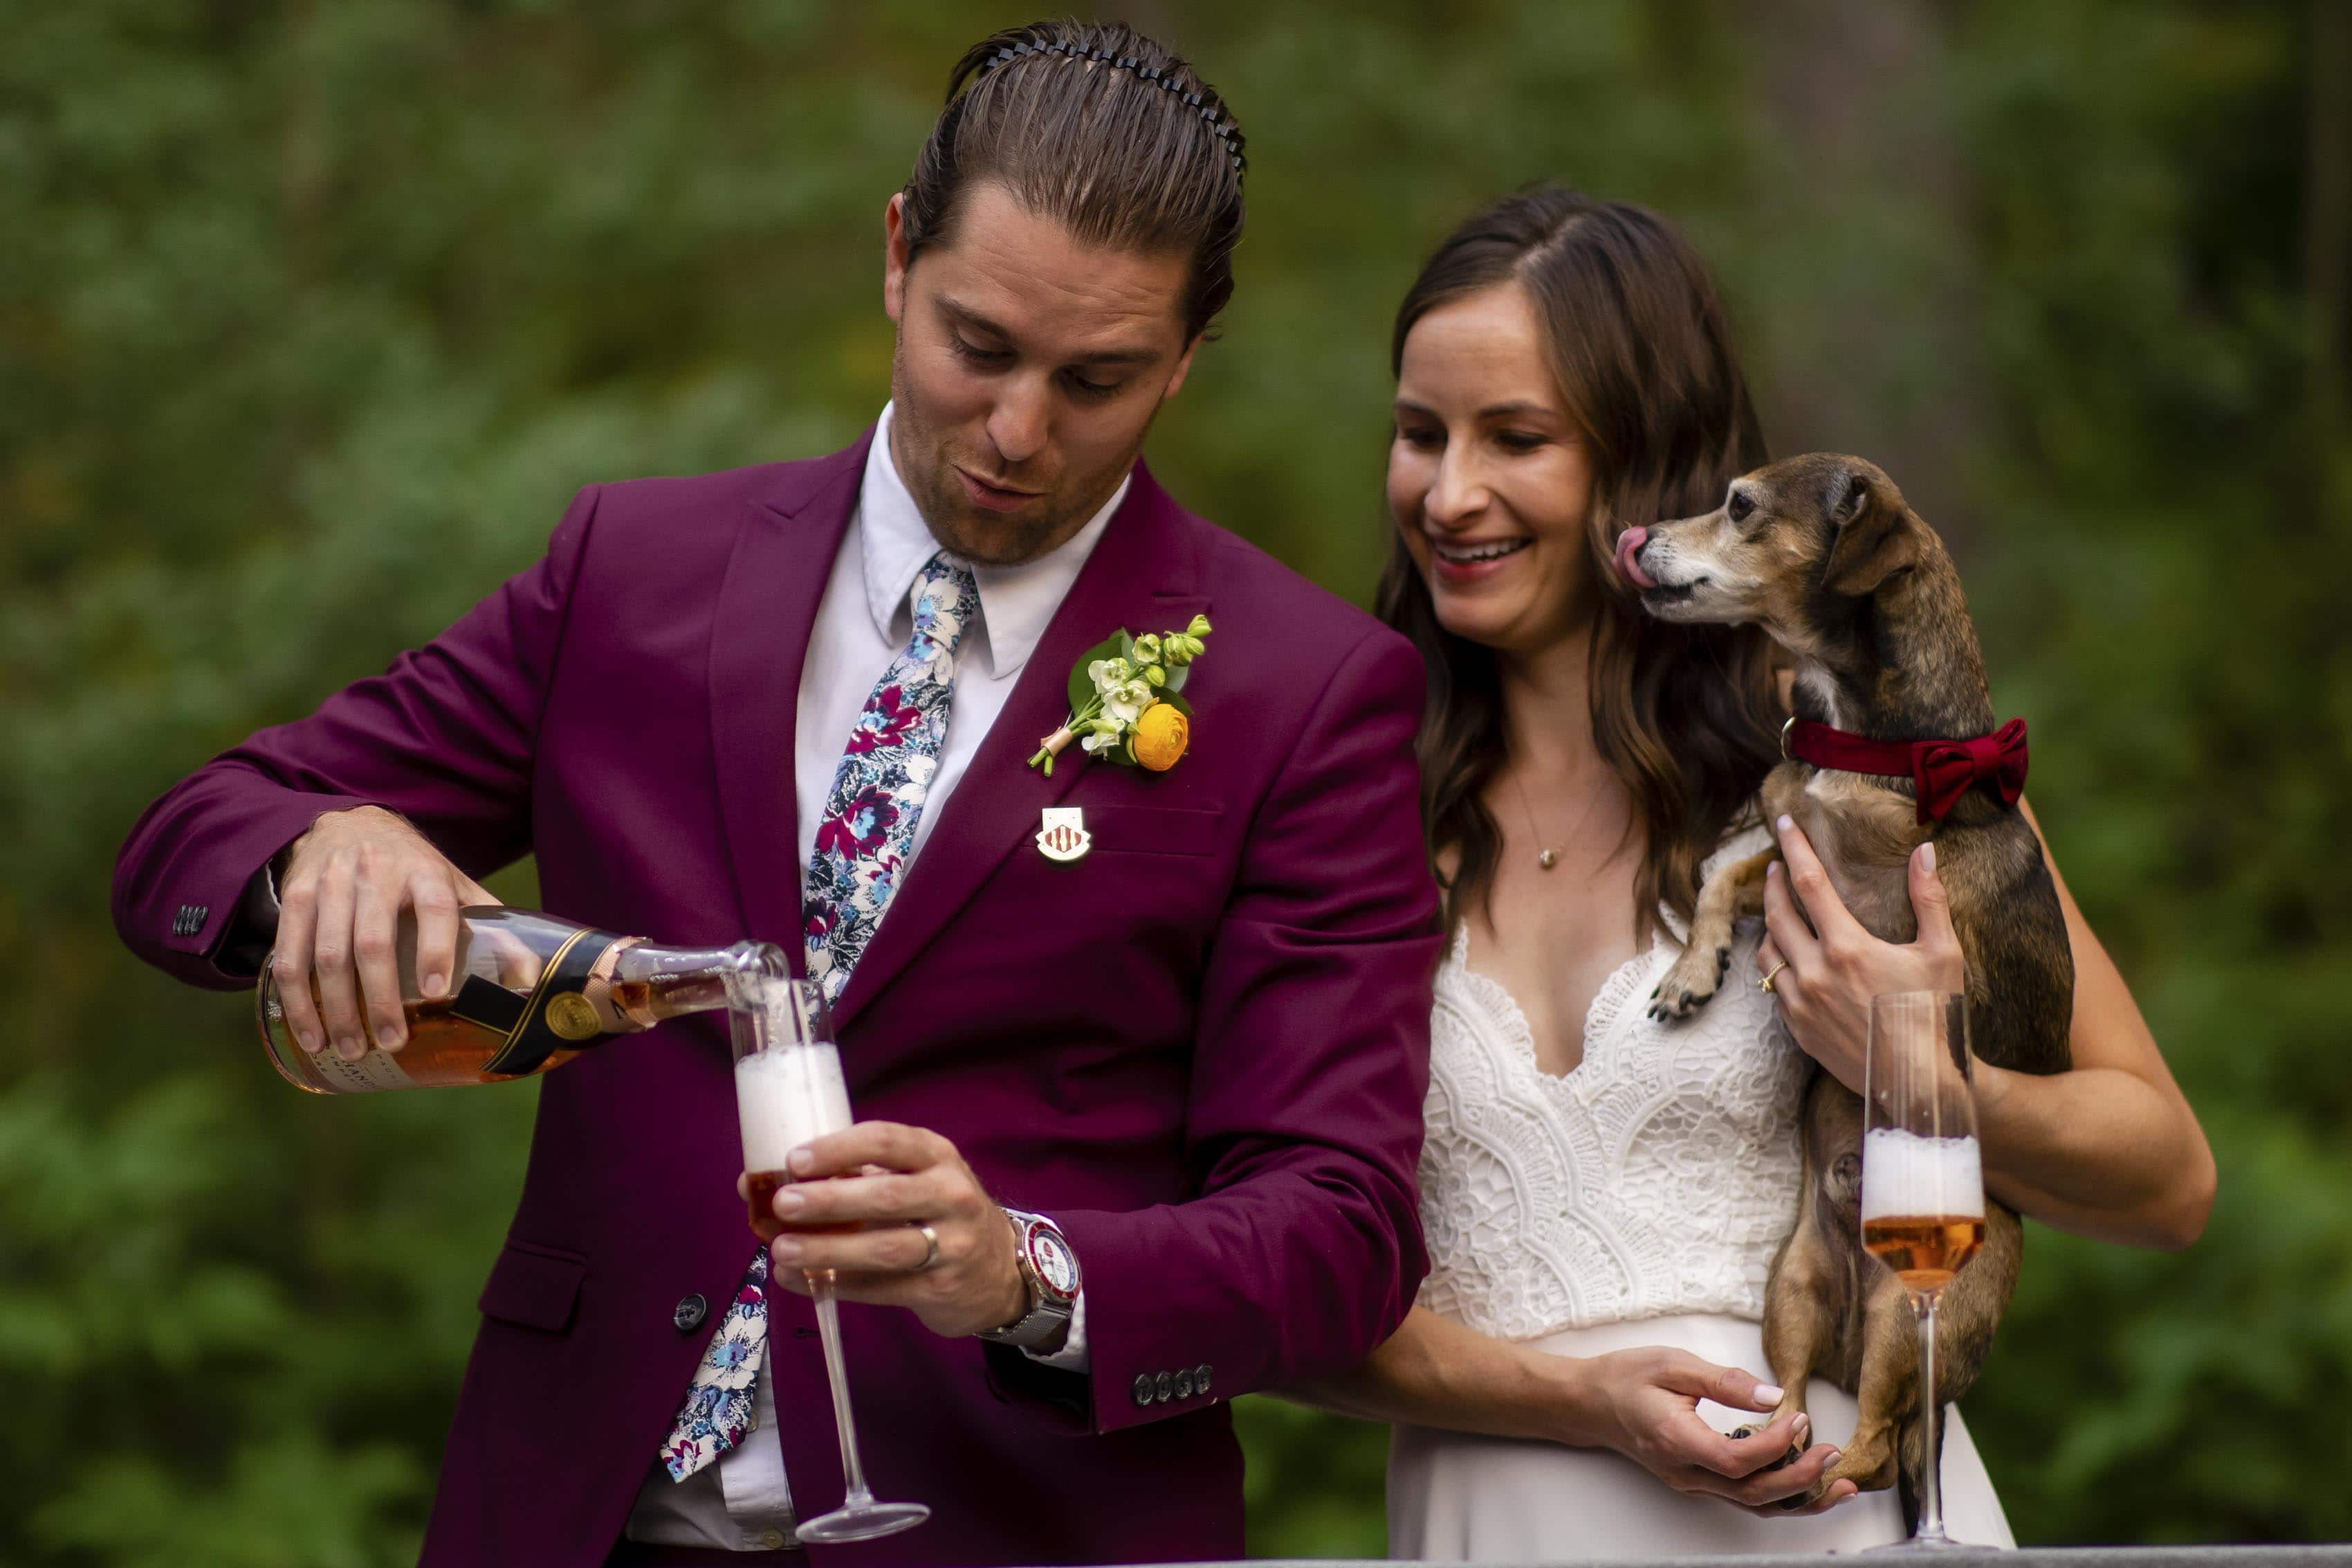 The groom pours champagne as bride holds their dog after their elopement ceremony in the mountains of Colorado